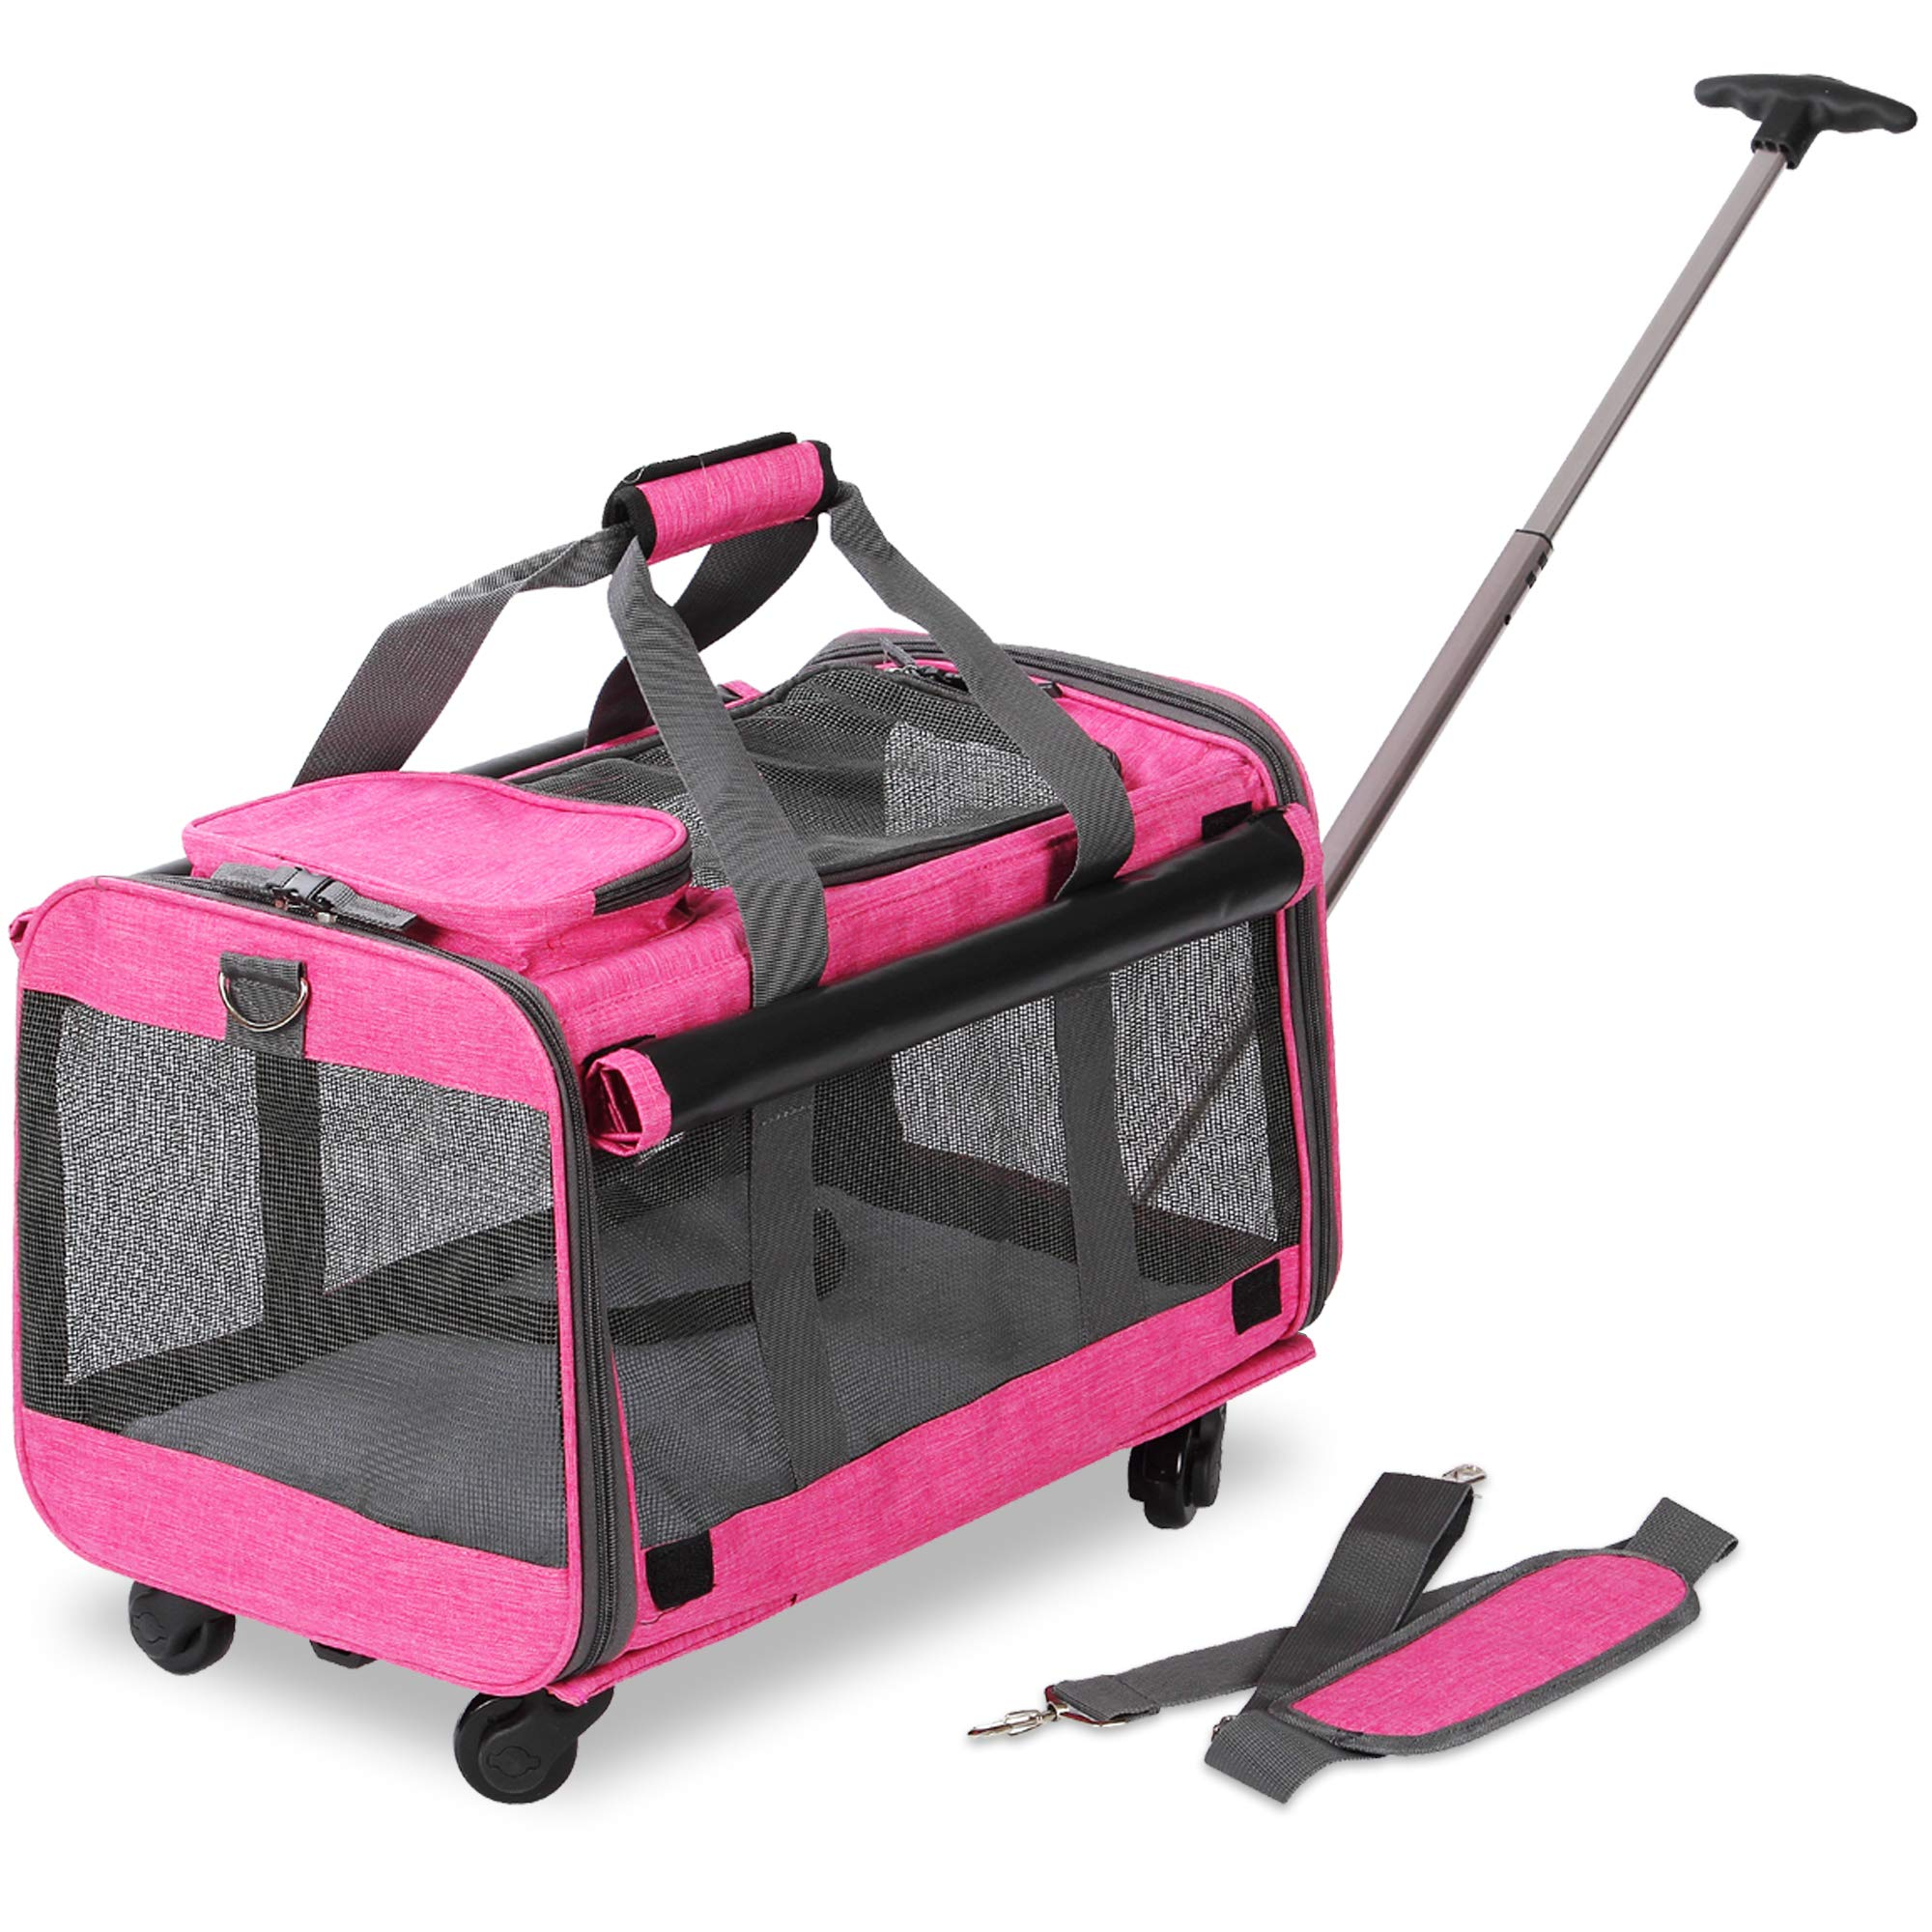 KOPEKS Pet Carrier with Detachable Wheels for Small and Medium Dogs & Cats - Heather Pink